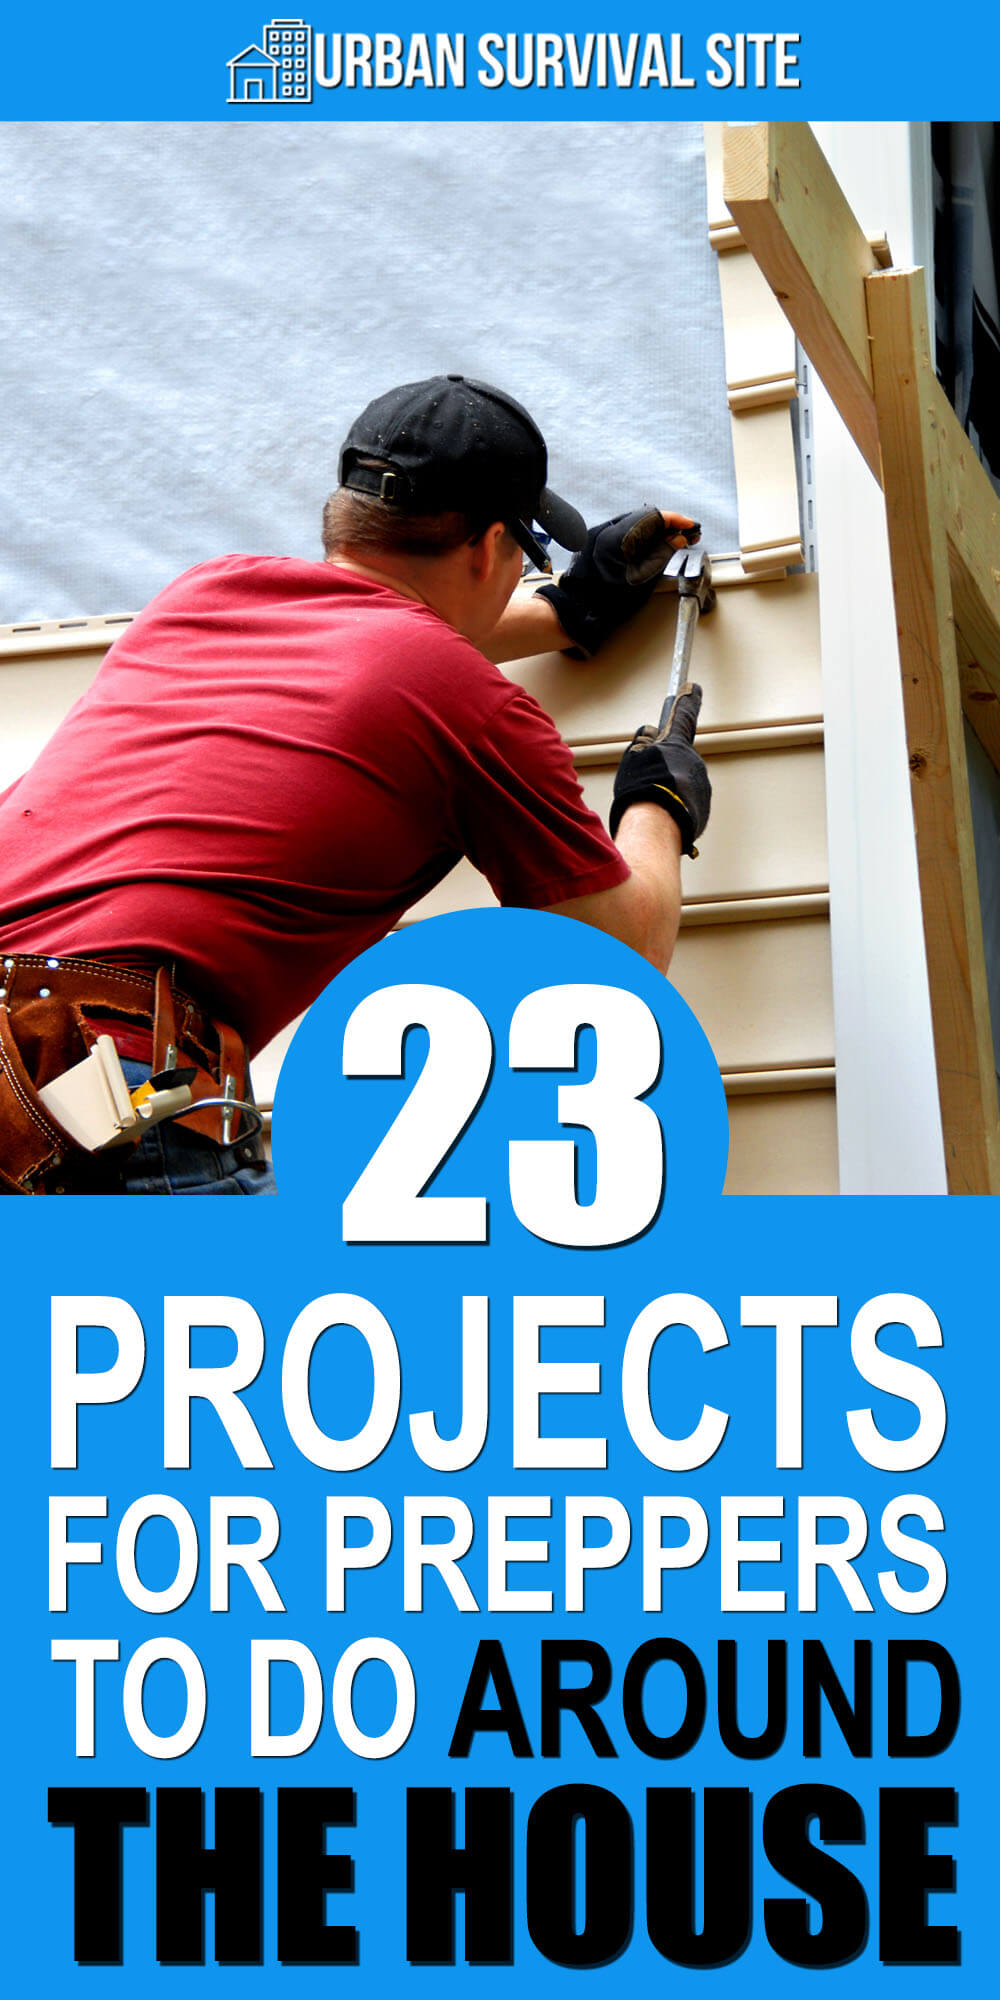 23 Projects For Preppers To Do Around The House